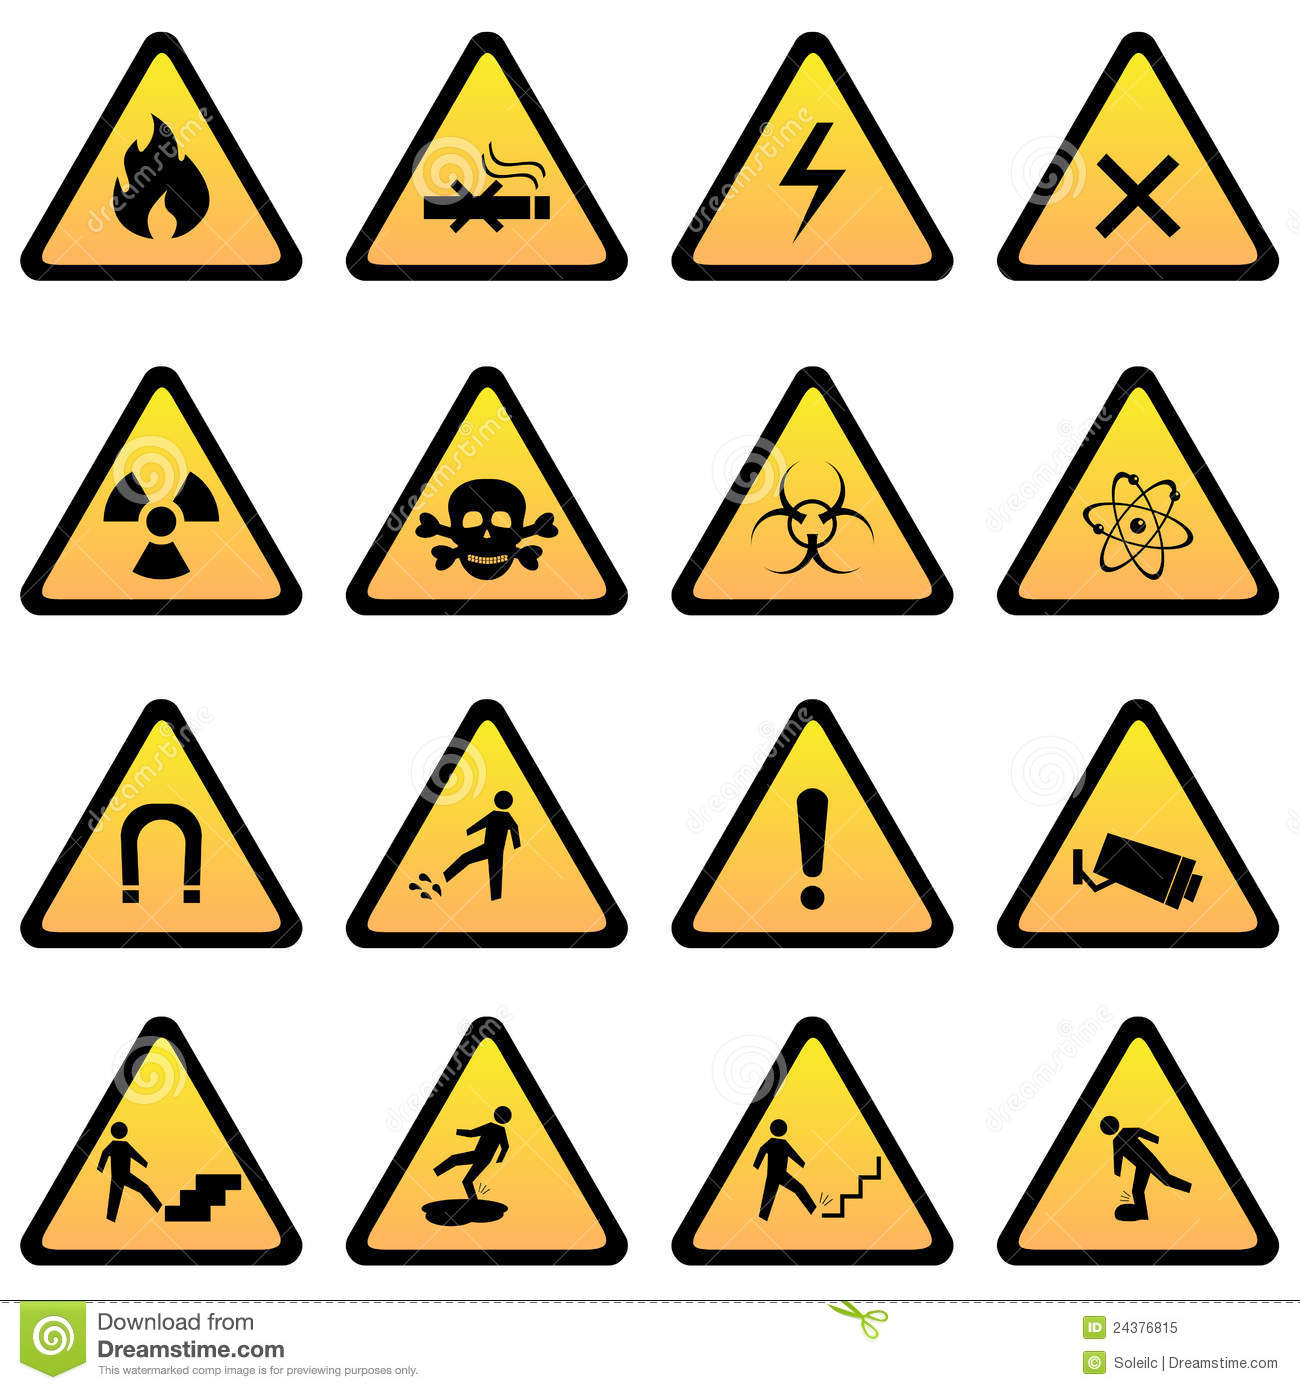 Warning And Danger Signs Royalty Free Stock Photo - Image: 24376815